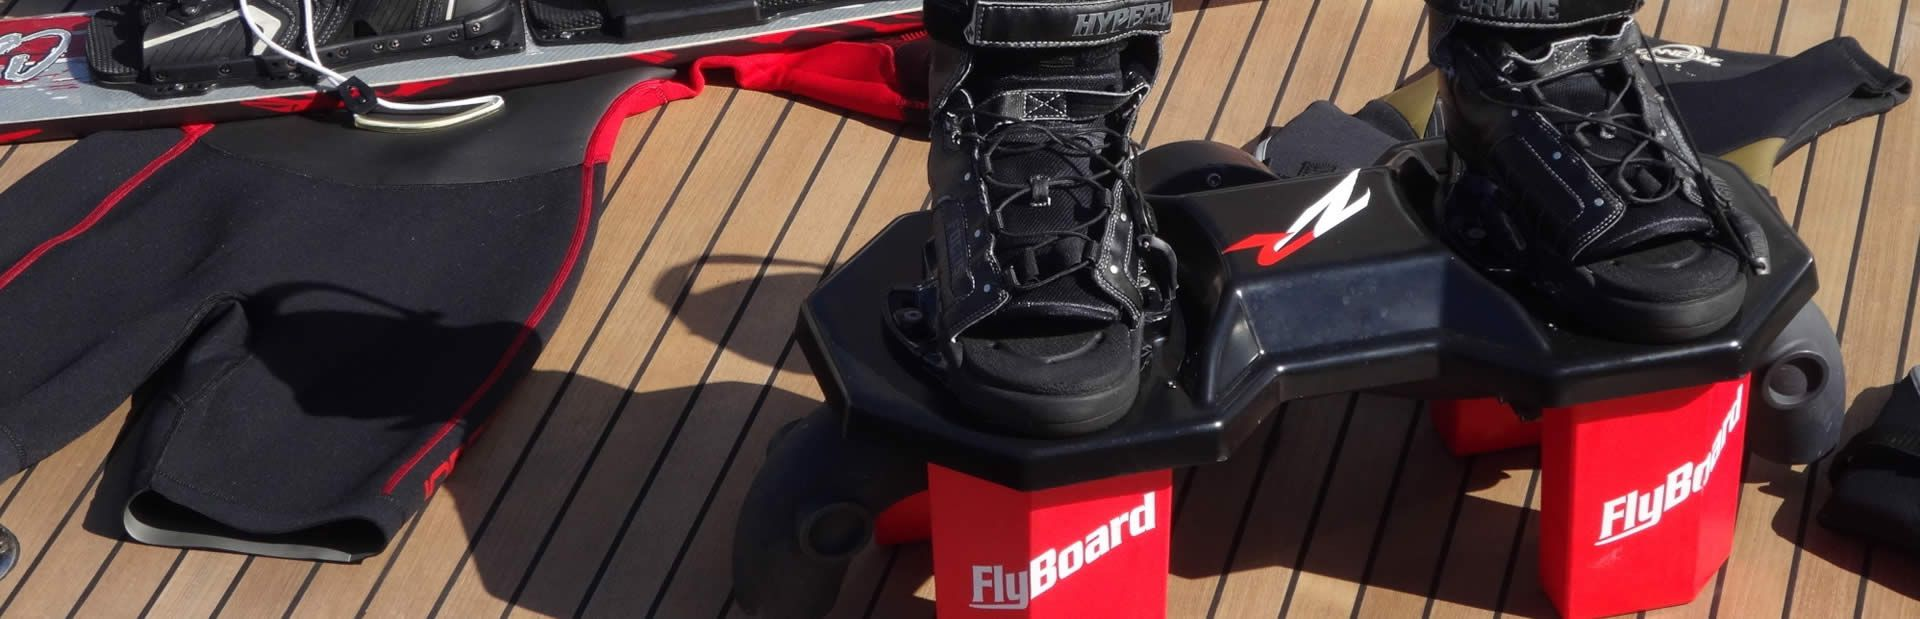 Flyboard charter toys ready to be used